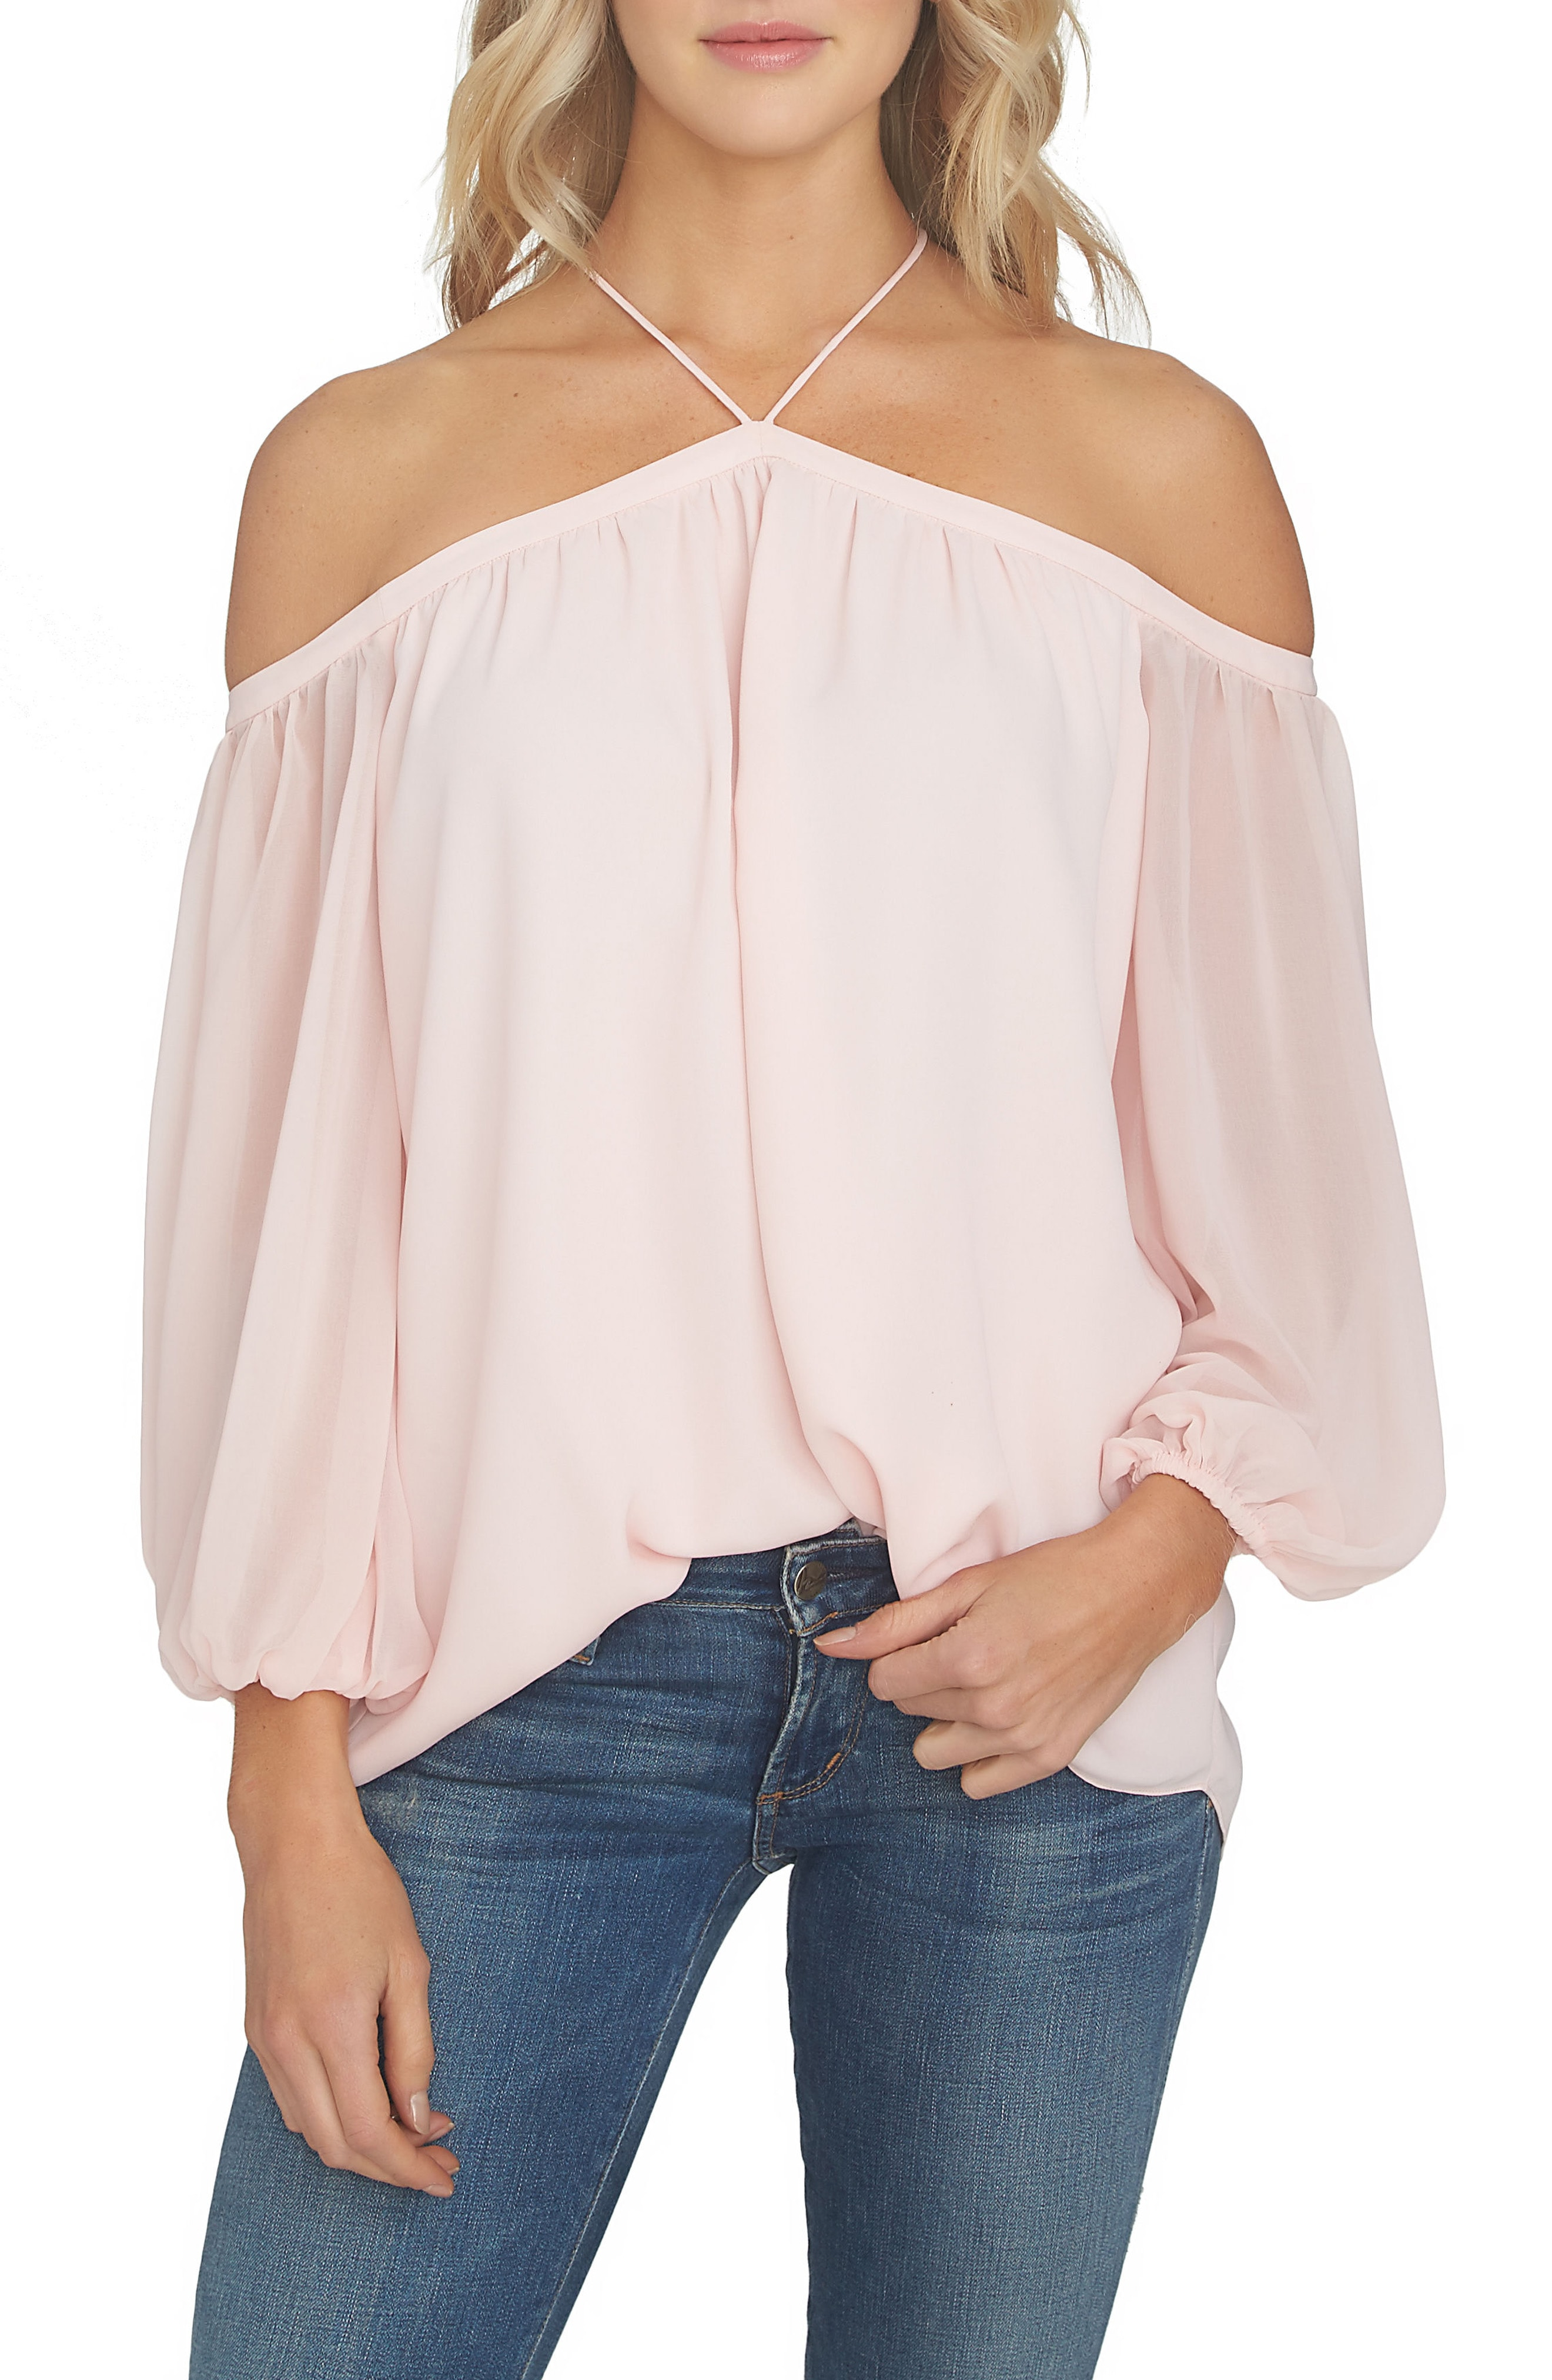 Wear the dressy tops to feel   feminine and look pretty